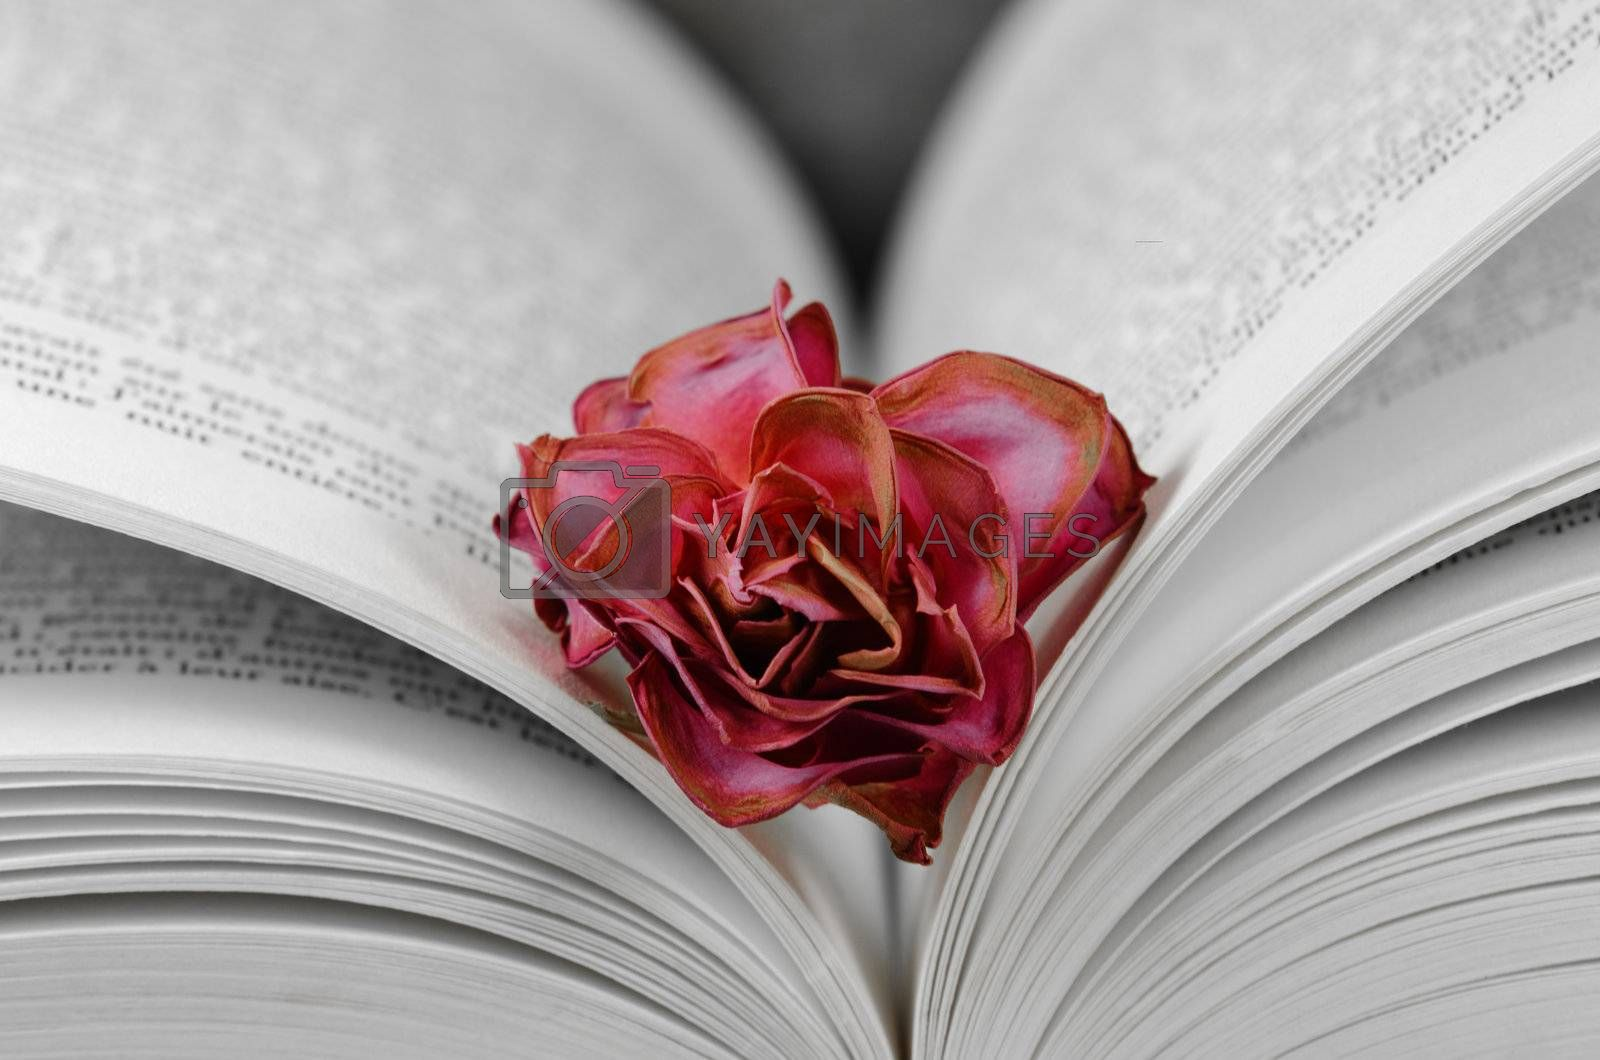 a faded rose between the pages of a book